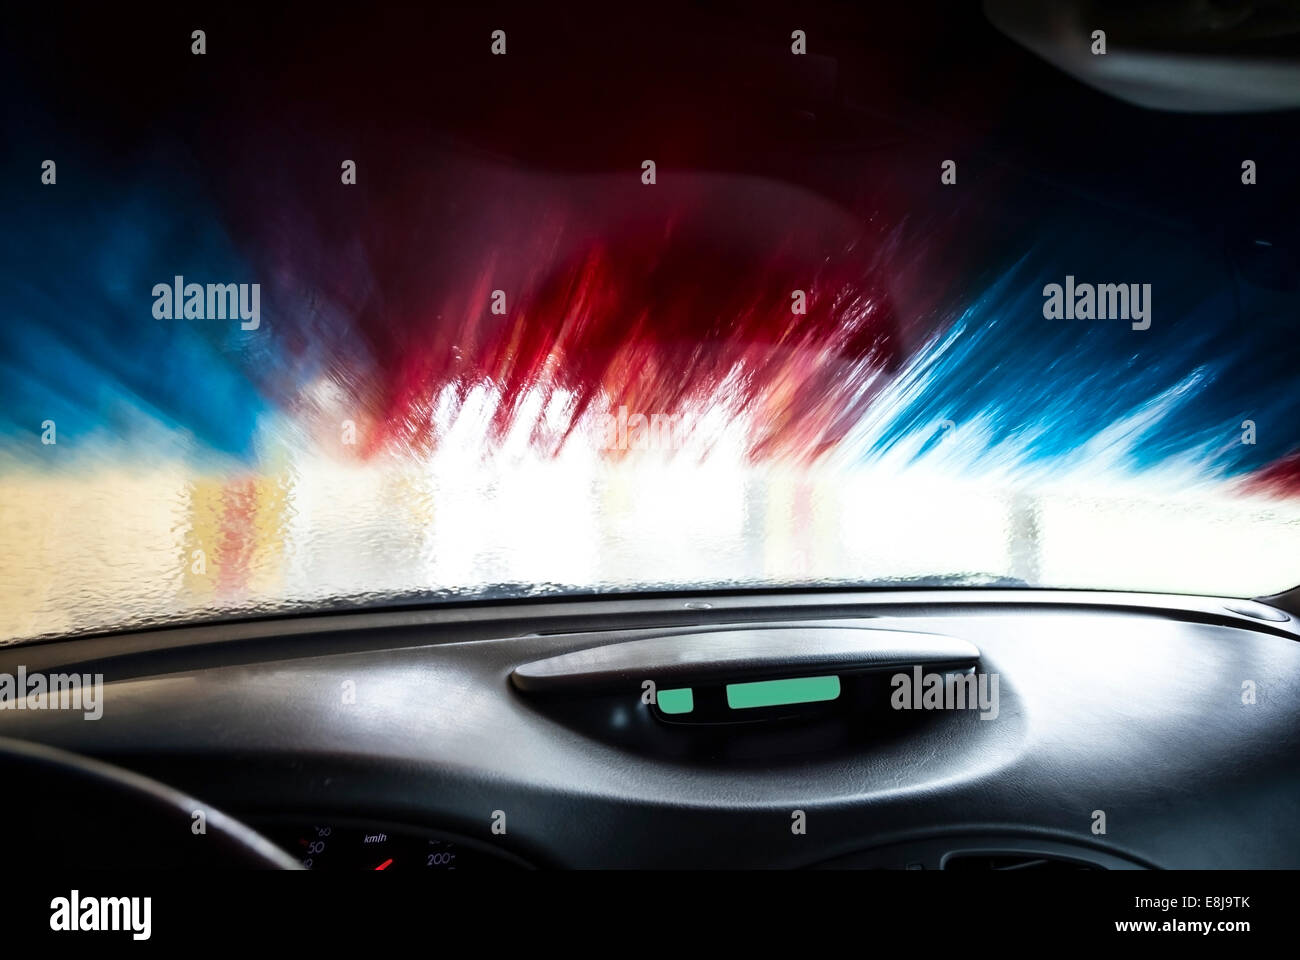 Motion blurred picture of car wash from inside a car during the wash. - Stock Image